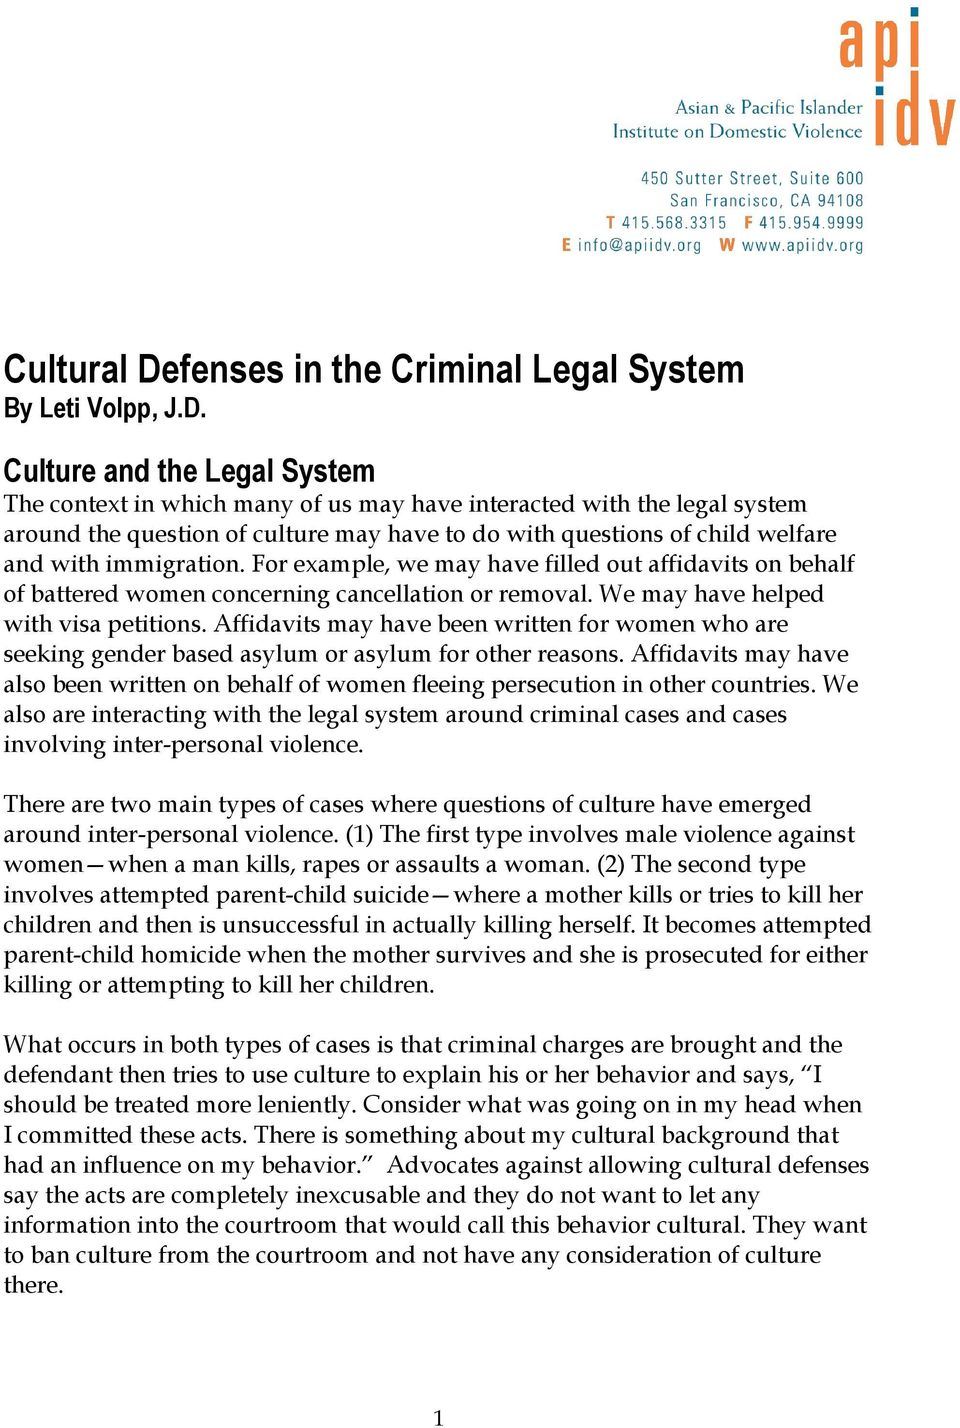 Culture and the Legal System The context in which many of us may have interacted with the legal system around the question of culture may have to do with questions of child welfare and with